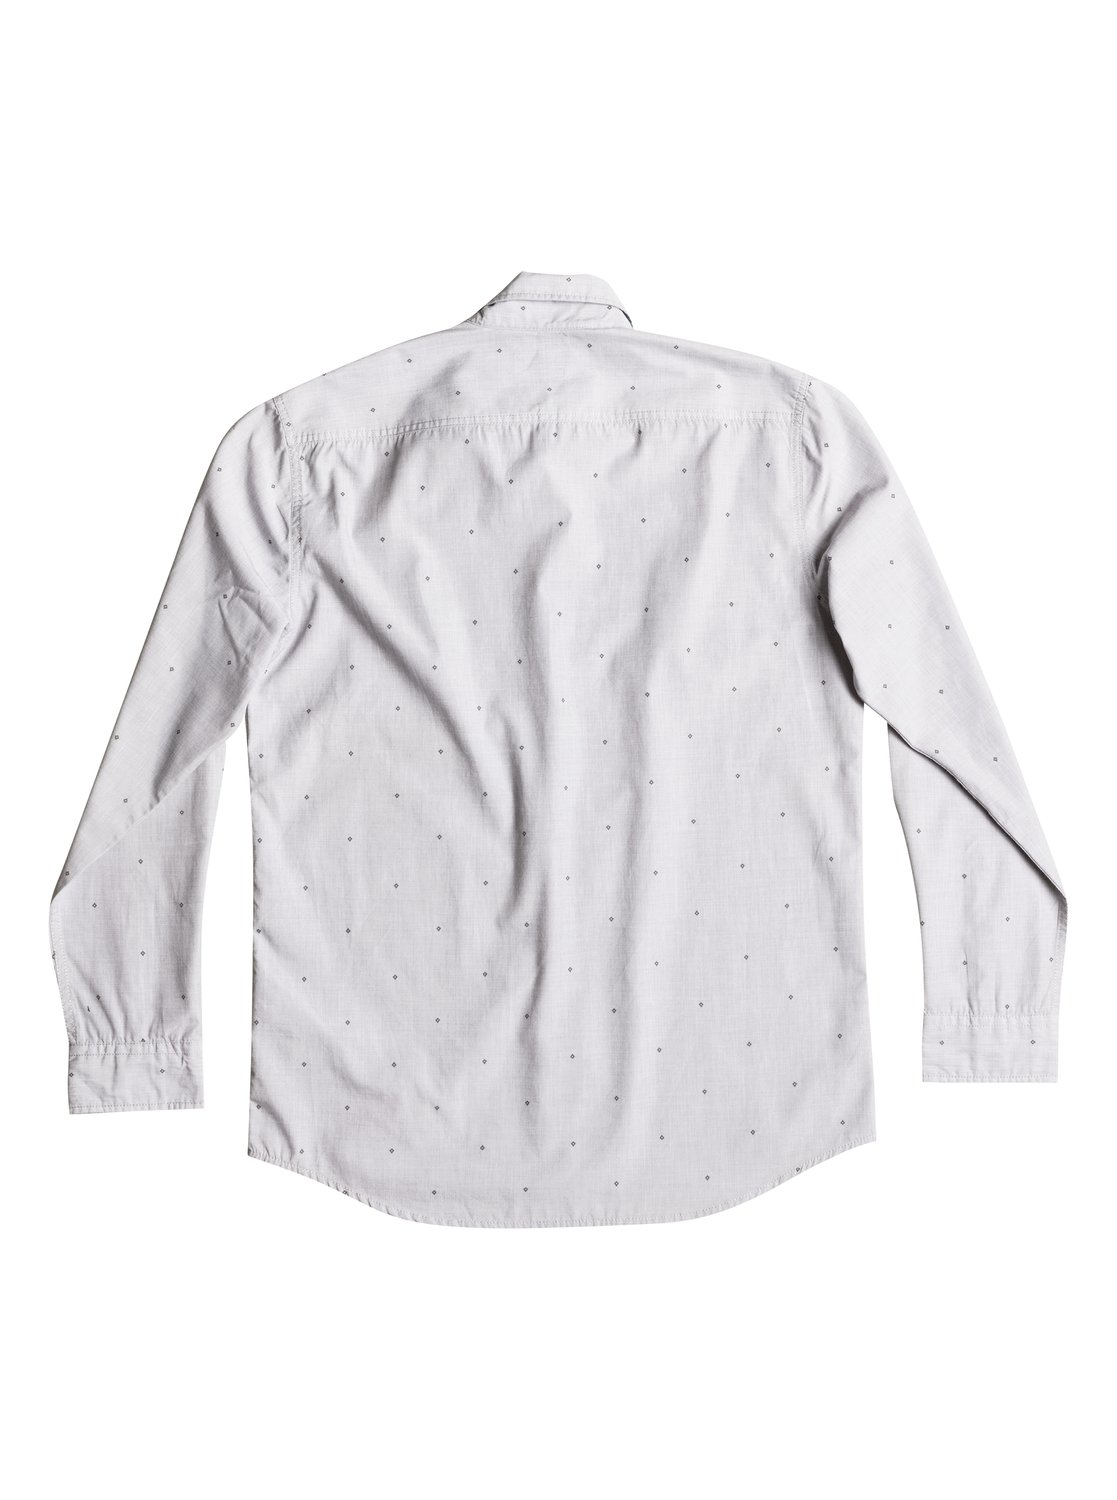 Quiksilver-New-Everyday-Mini-Motif-Long-Sleeve-Shirt-Hombre